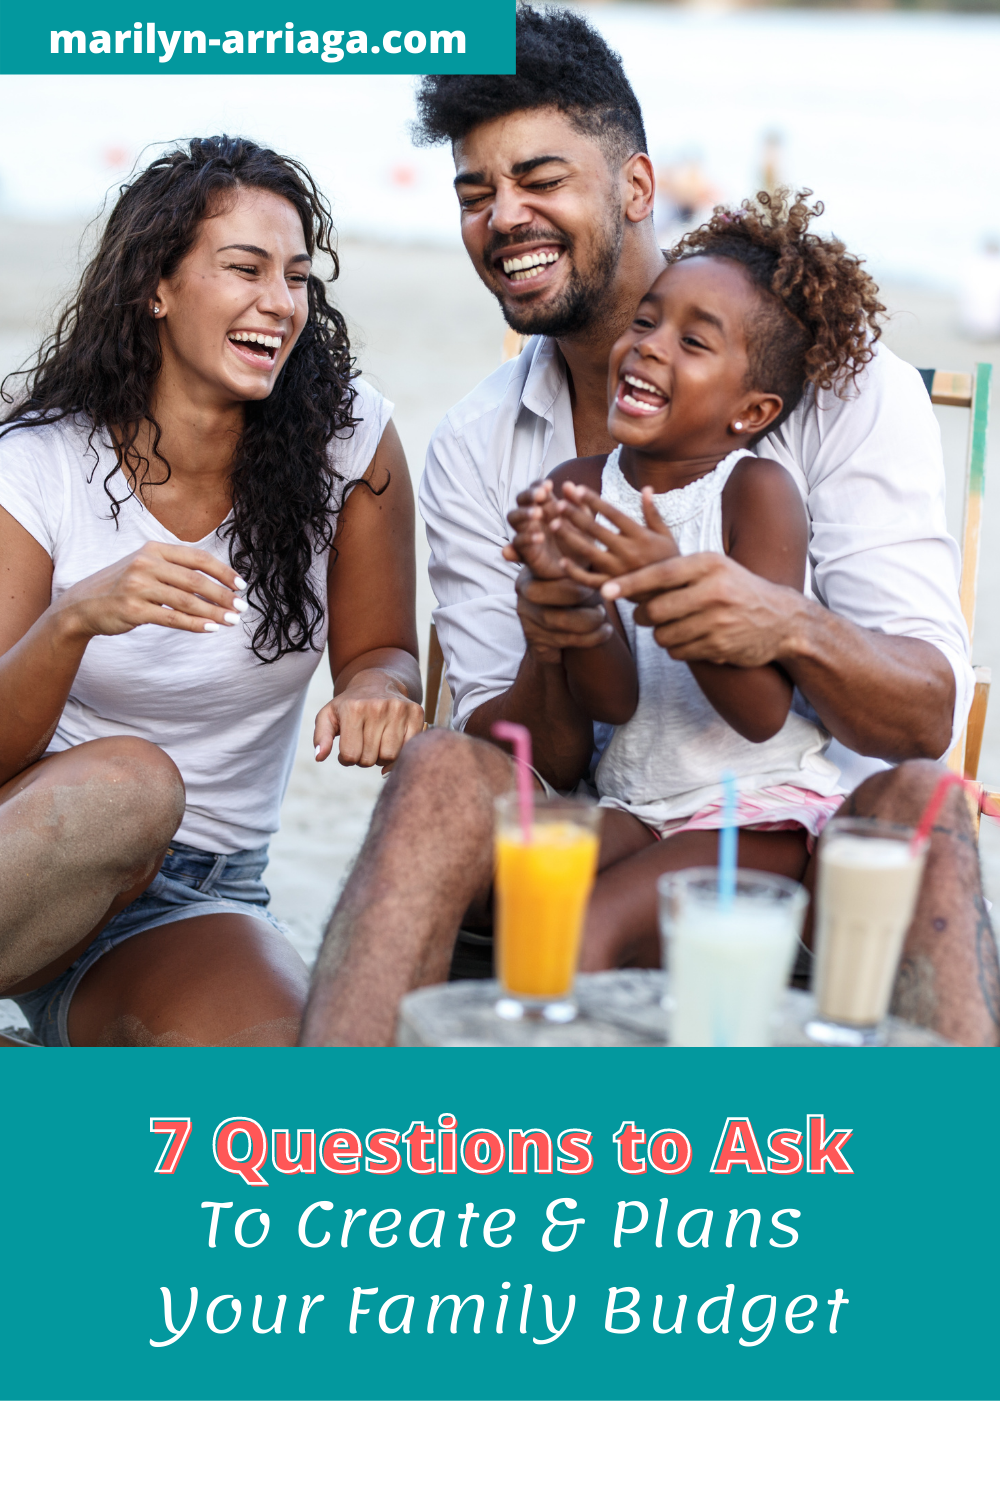 questions to ask creating family budget